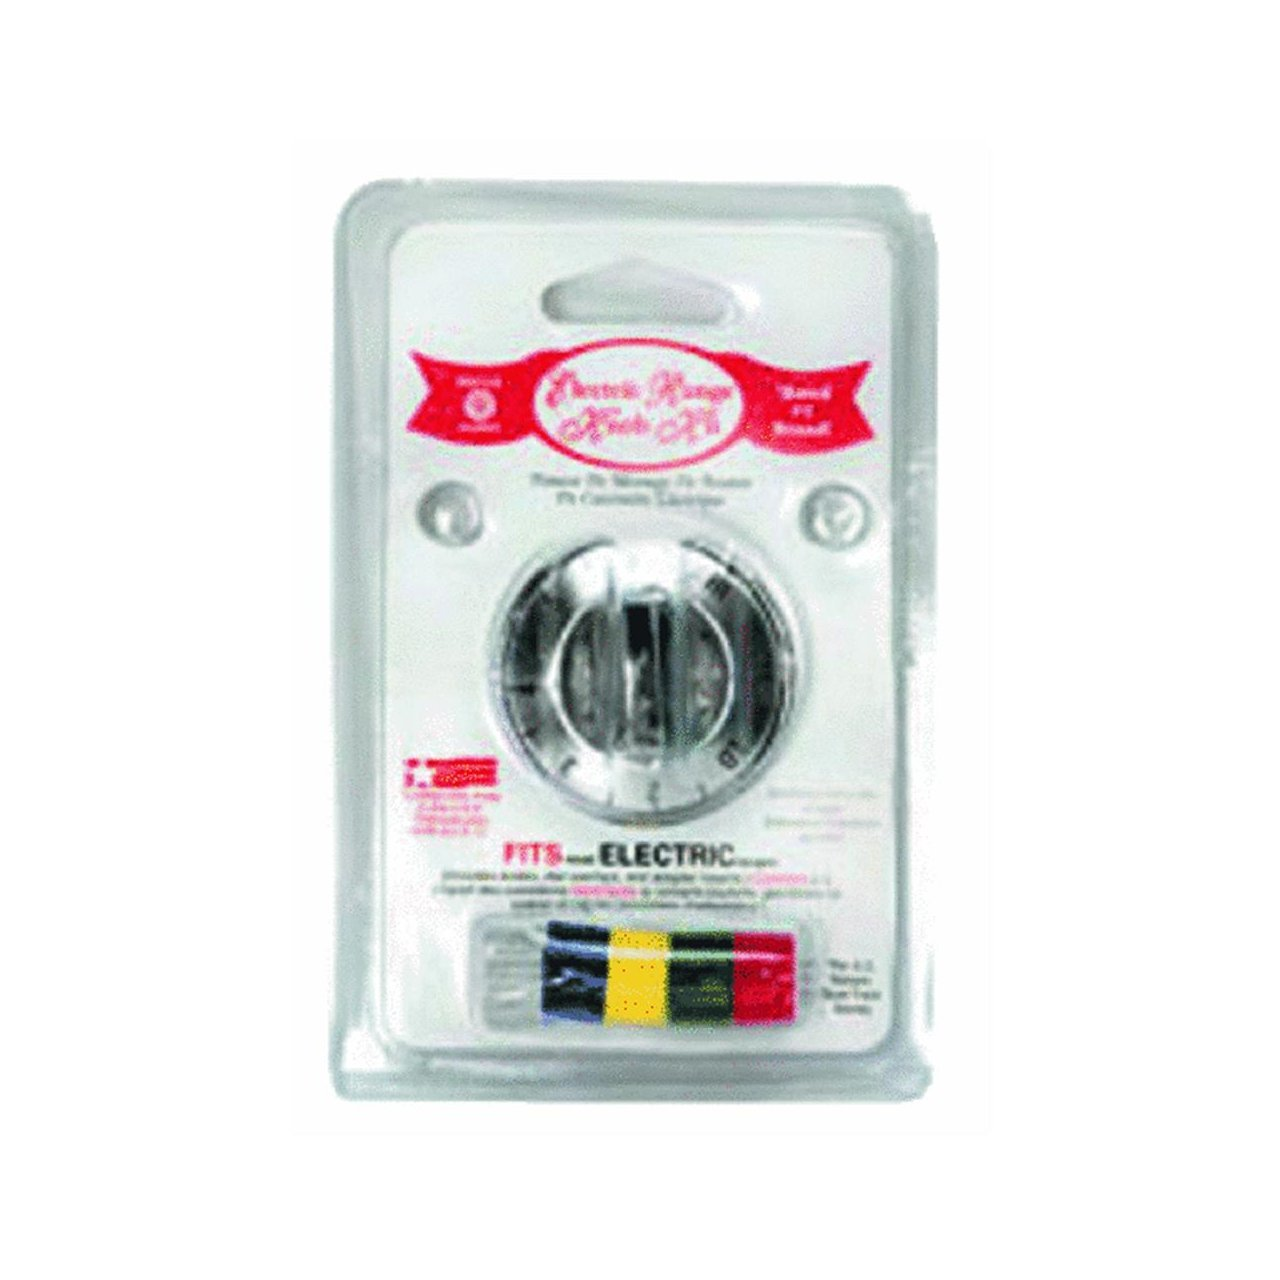 Range Kleen 8121 Electric Range and Oven Replacement Knob Kit, Chrome